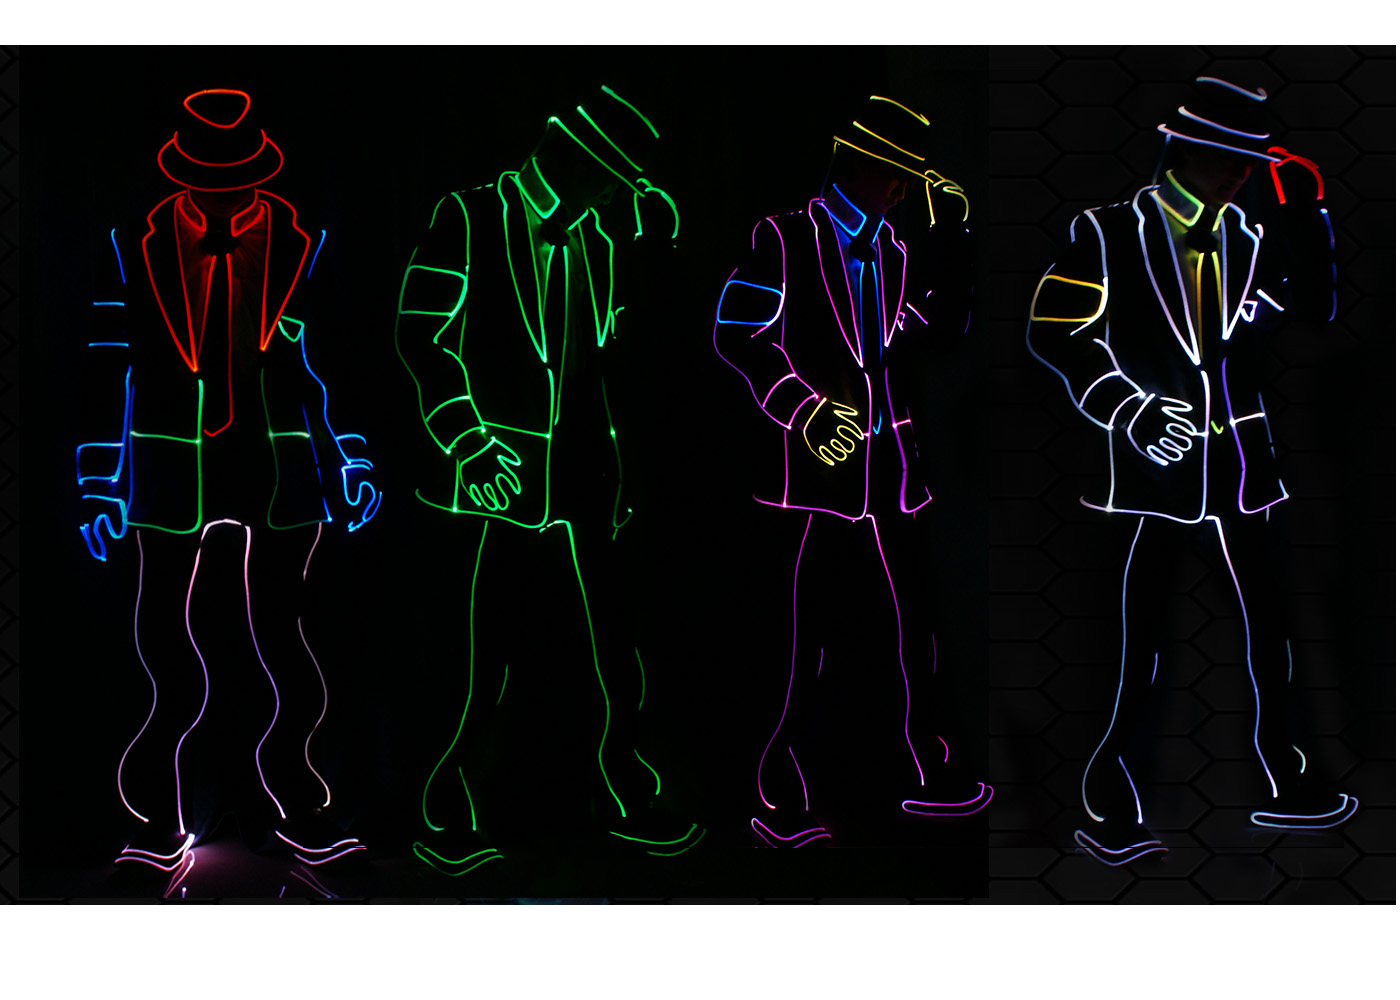 LED & Fiber Optic Costumes